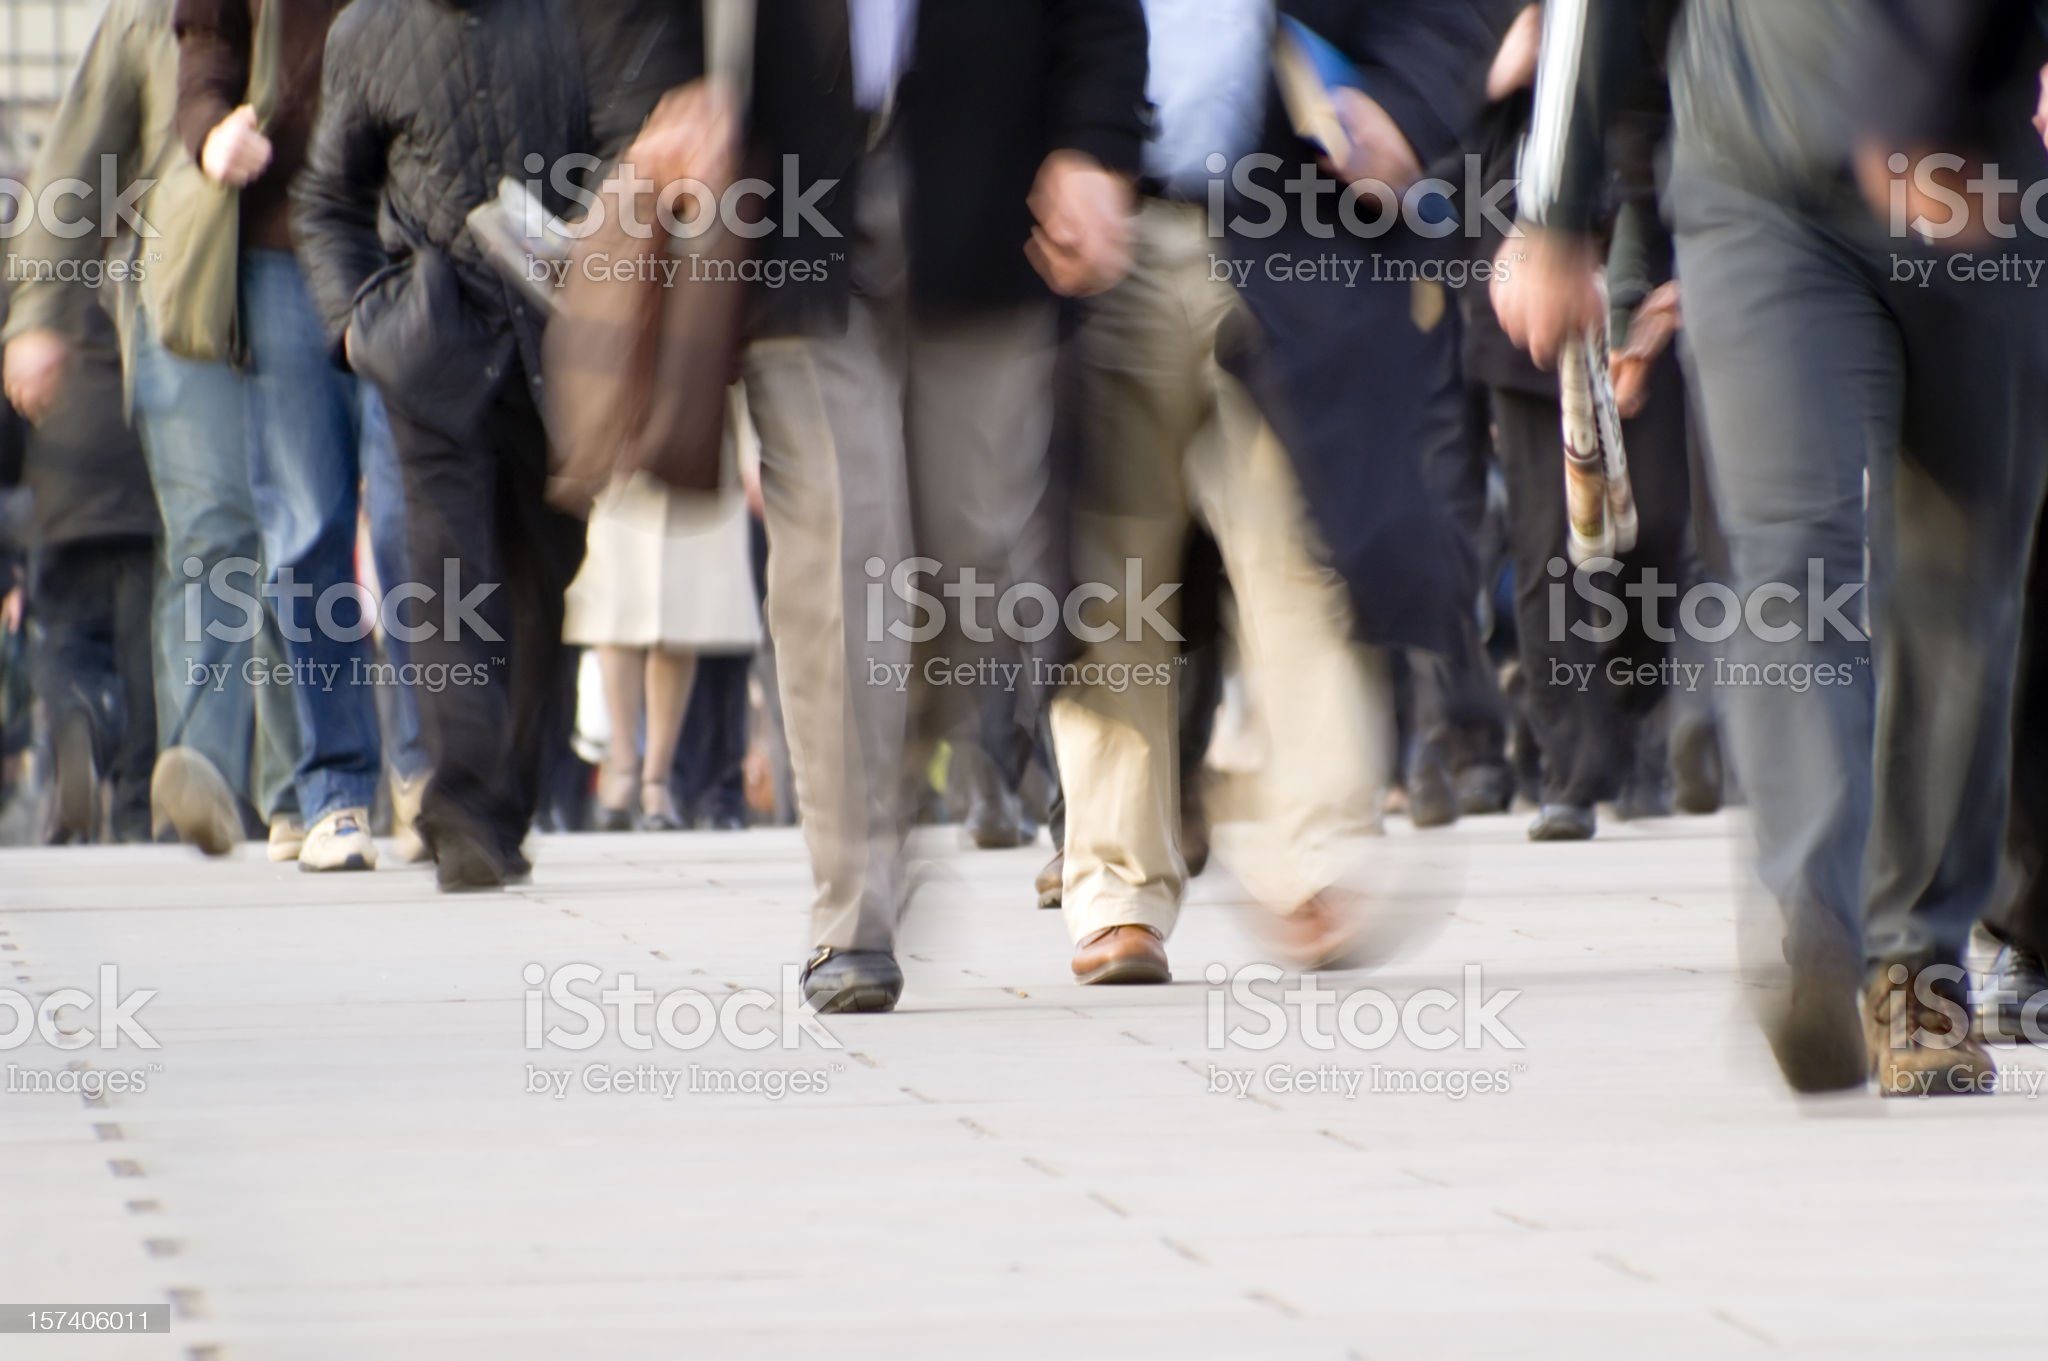 City workers commuters walking with movement blur royalty-free stock photo